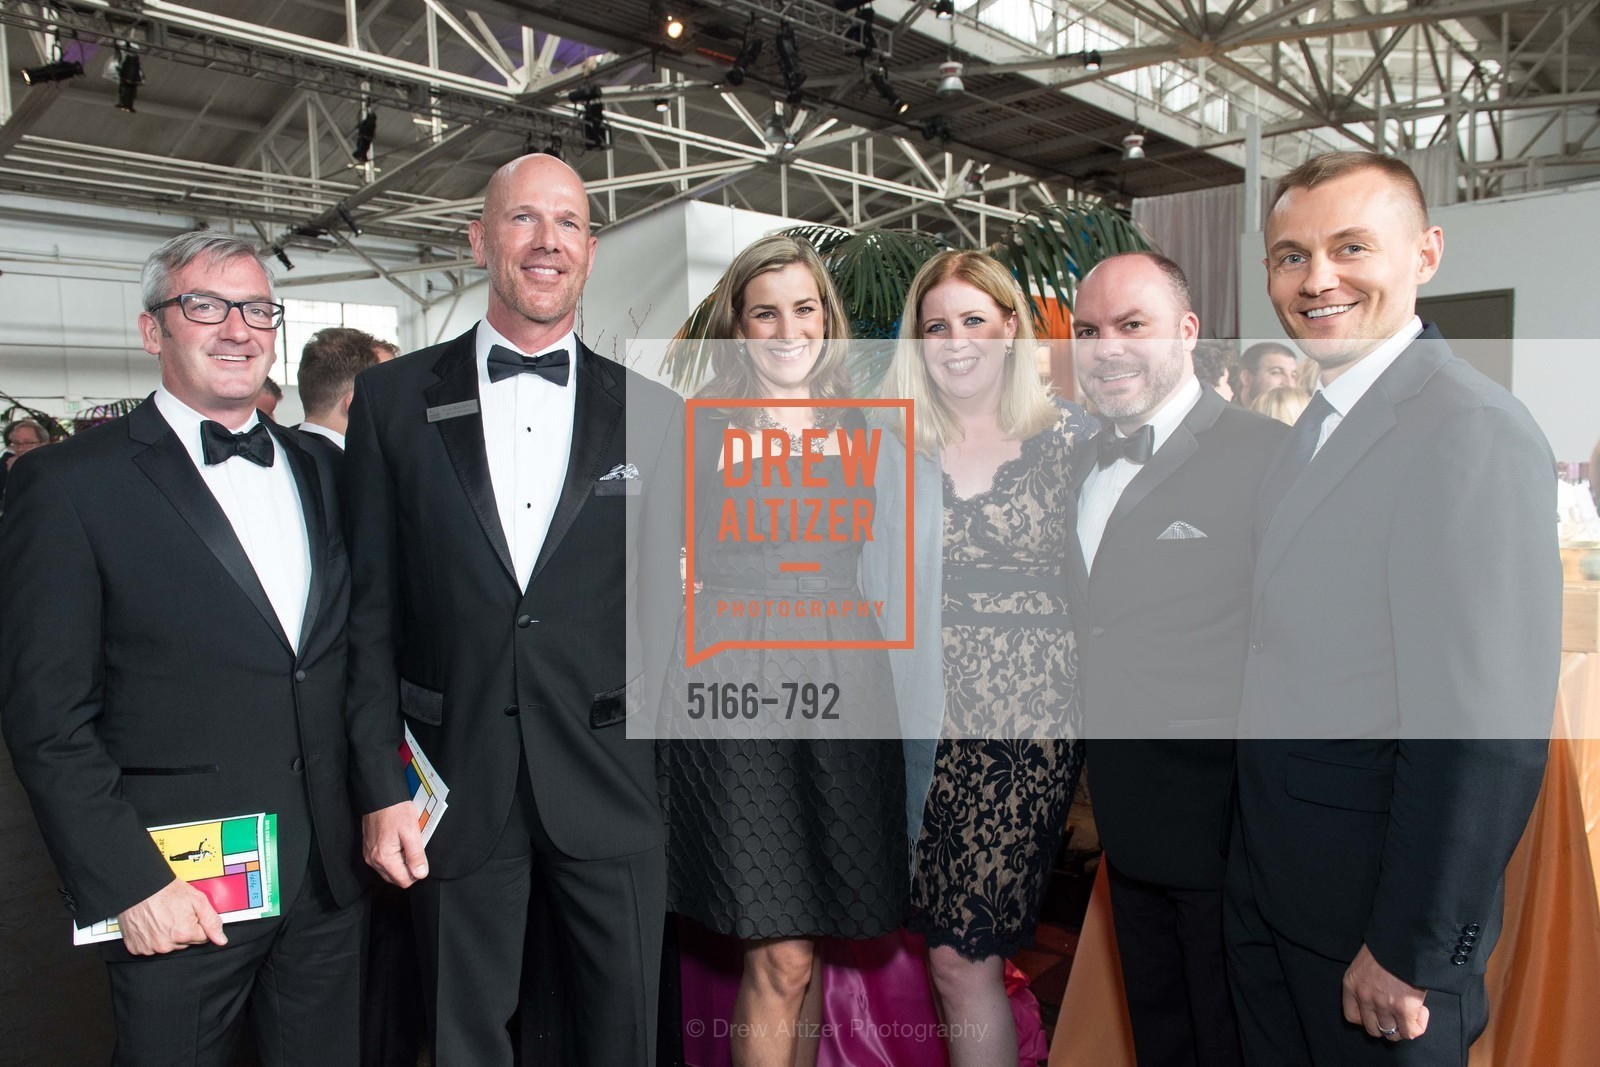 Christopher Downing, Arne Boudewyn, Victoria Murphy, Kristen Green, Michael McNelly, MEALS ON WHEELS OF SAN FRANCISCO'S 28th Annual Star Chefs and Vintners Gala, US, April 19th, 2015,Drew Altizer, Drew Altizer Photography, full-service agency, private events, San Francisco photographer, photographer california